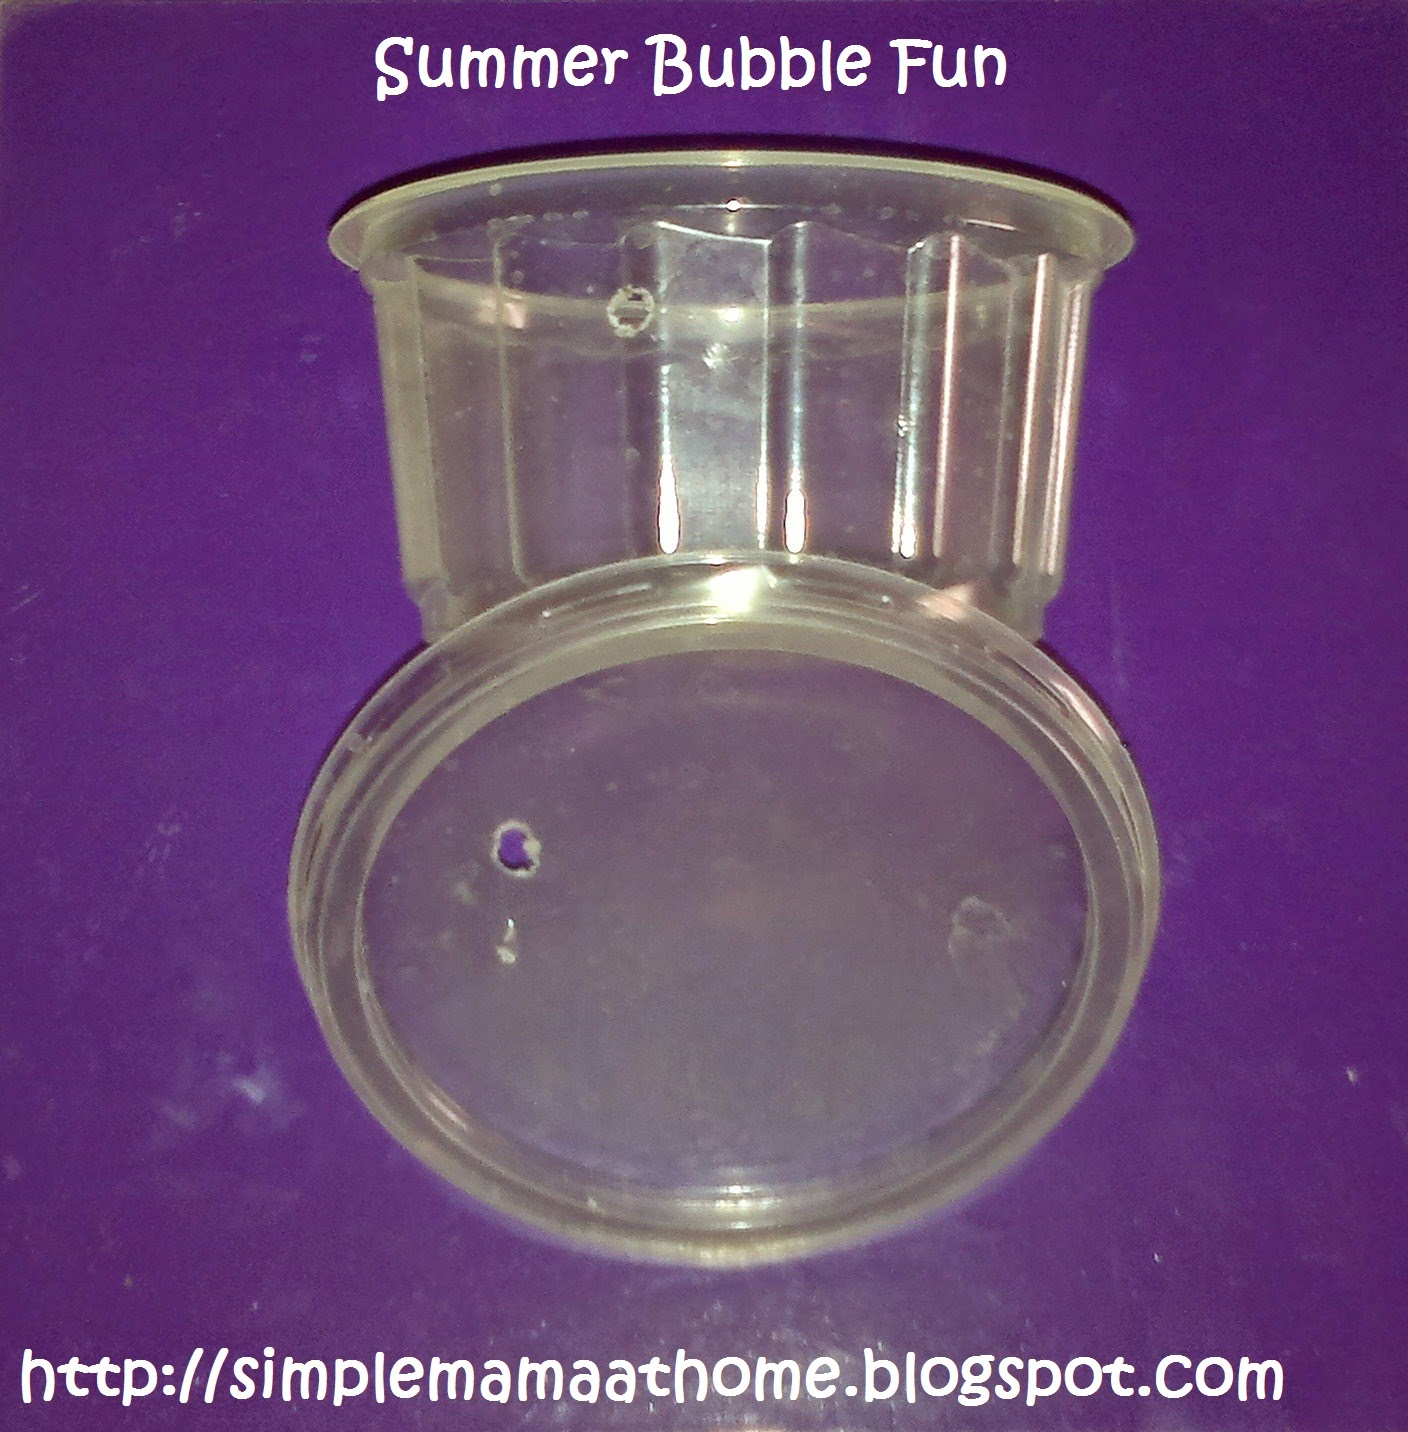 Homemade Bubble Blower and Bubbles